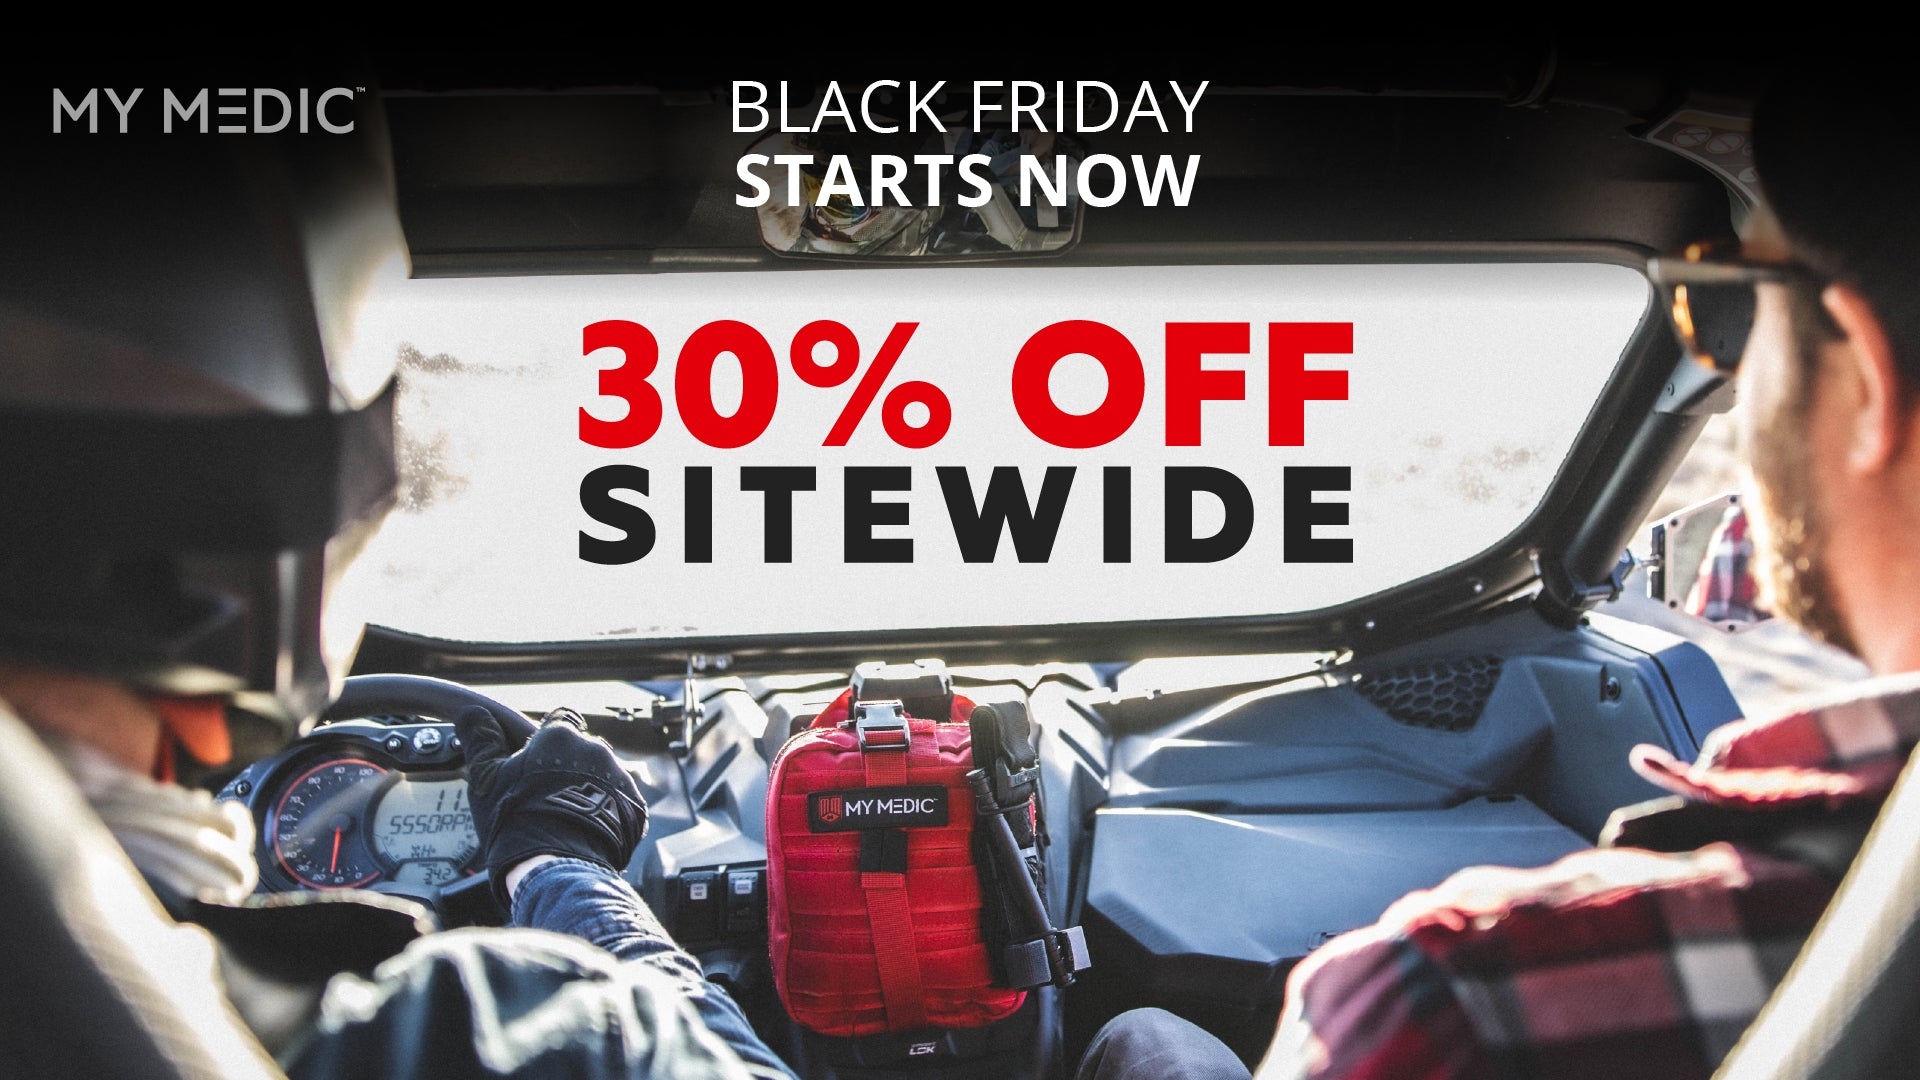 Black Friday: Shop Early, Ship Early